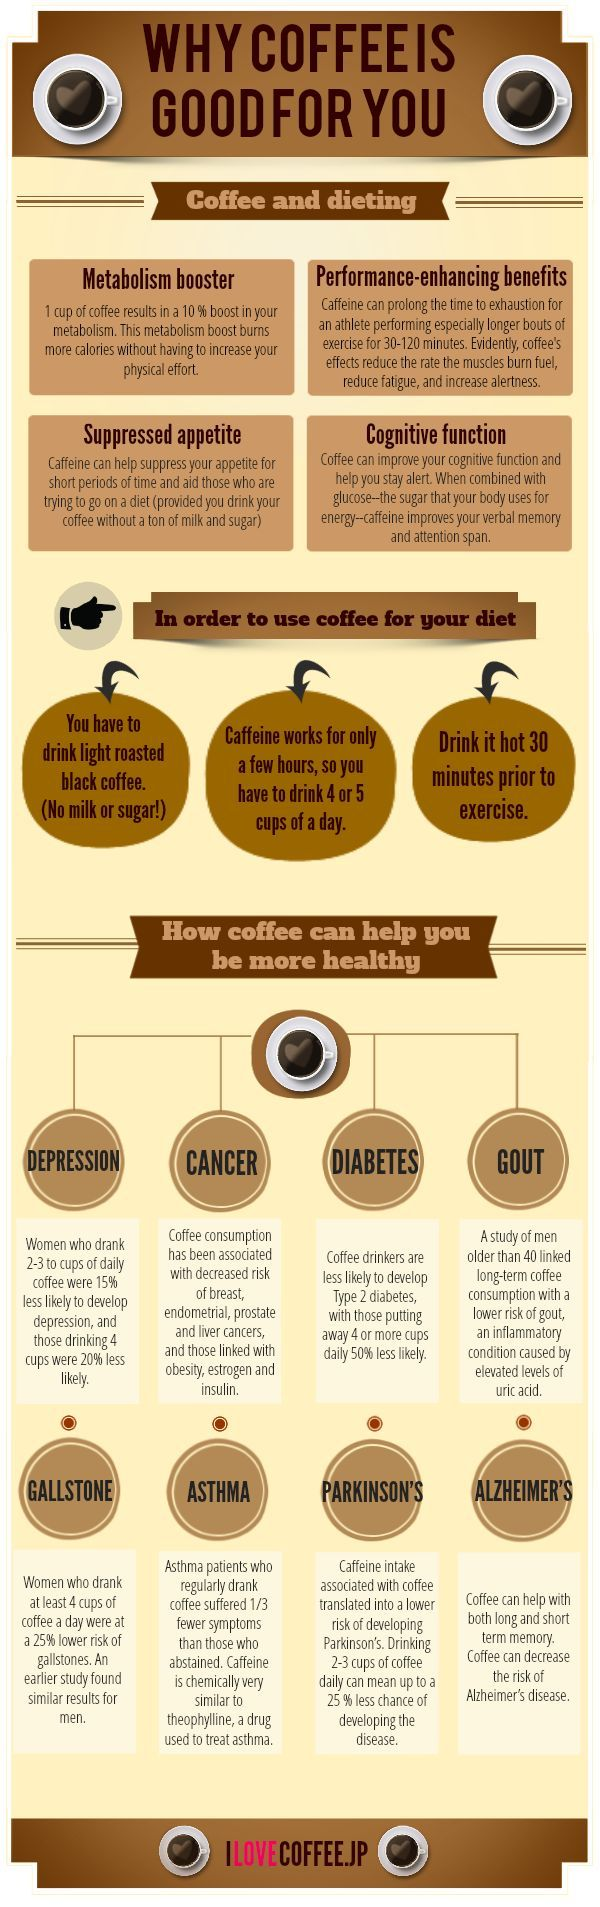 Coffee And Tea Infographic Coffee Low Carb And Recipes - Good bad effects coffee can